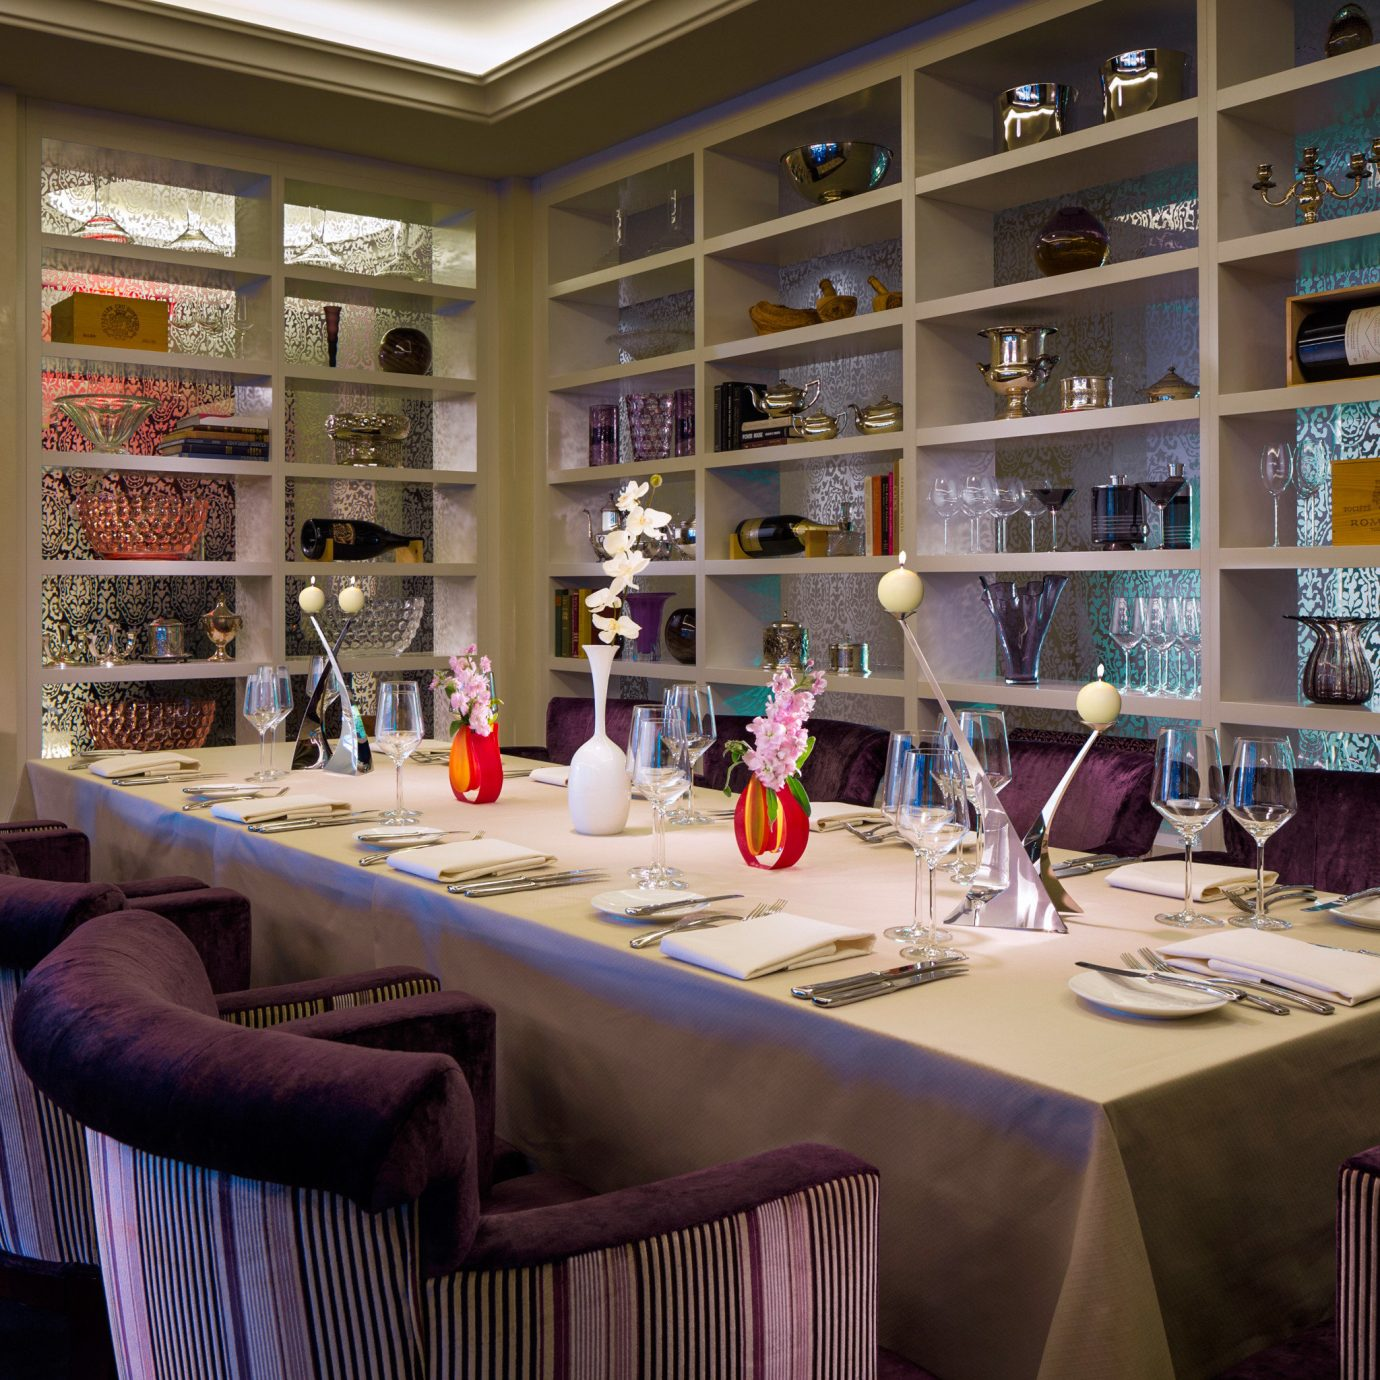 Boutique City Dining Drink Eat Hip Modern building restaurant retail library